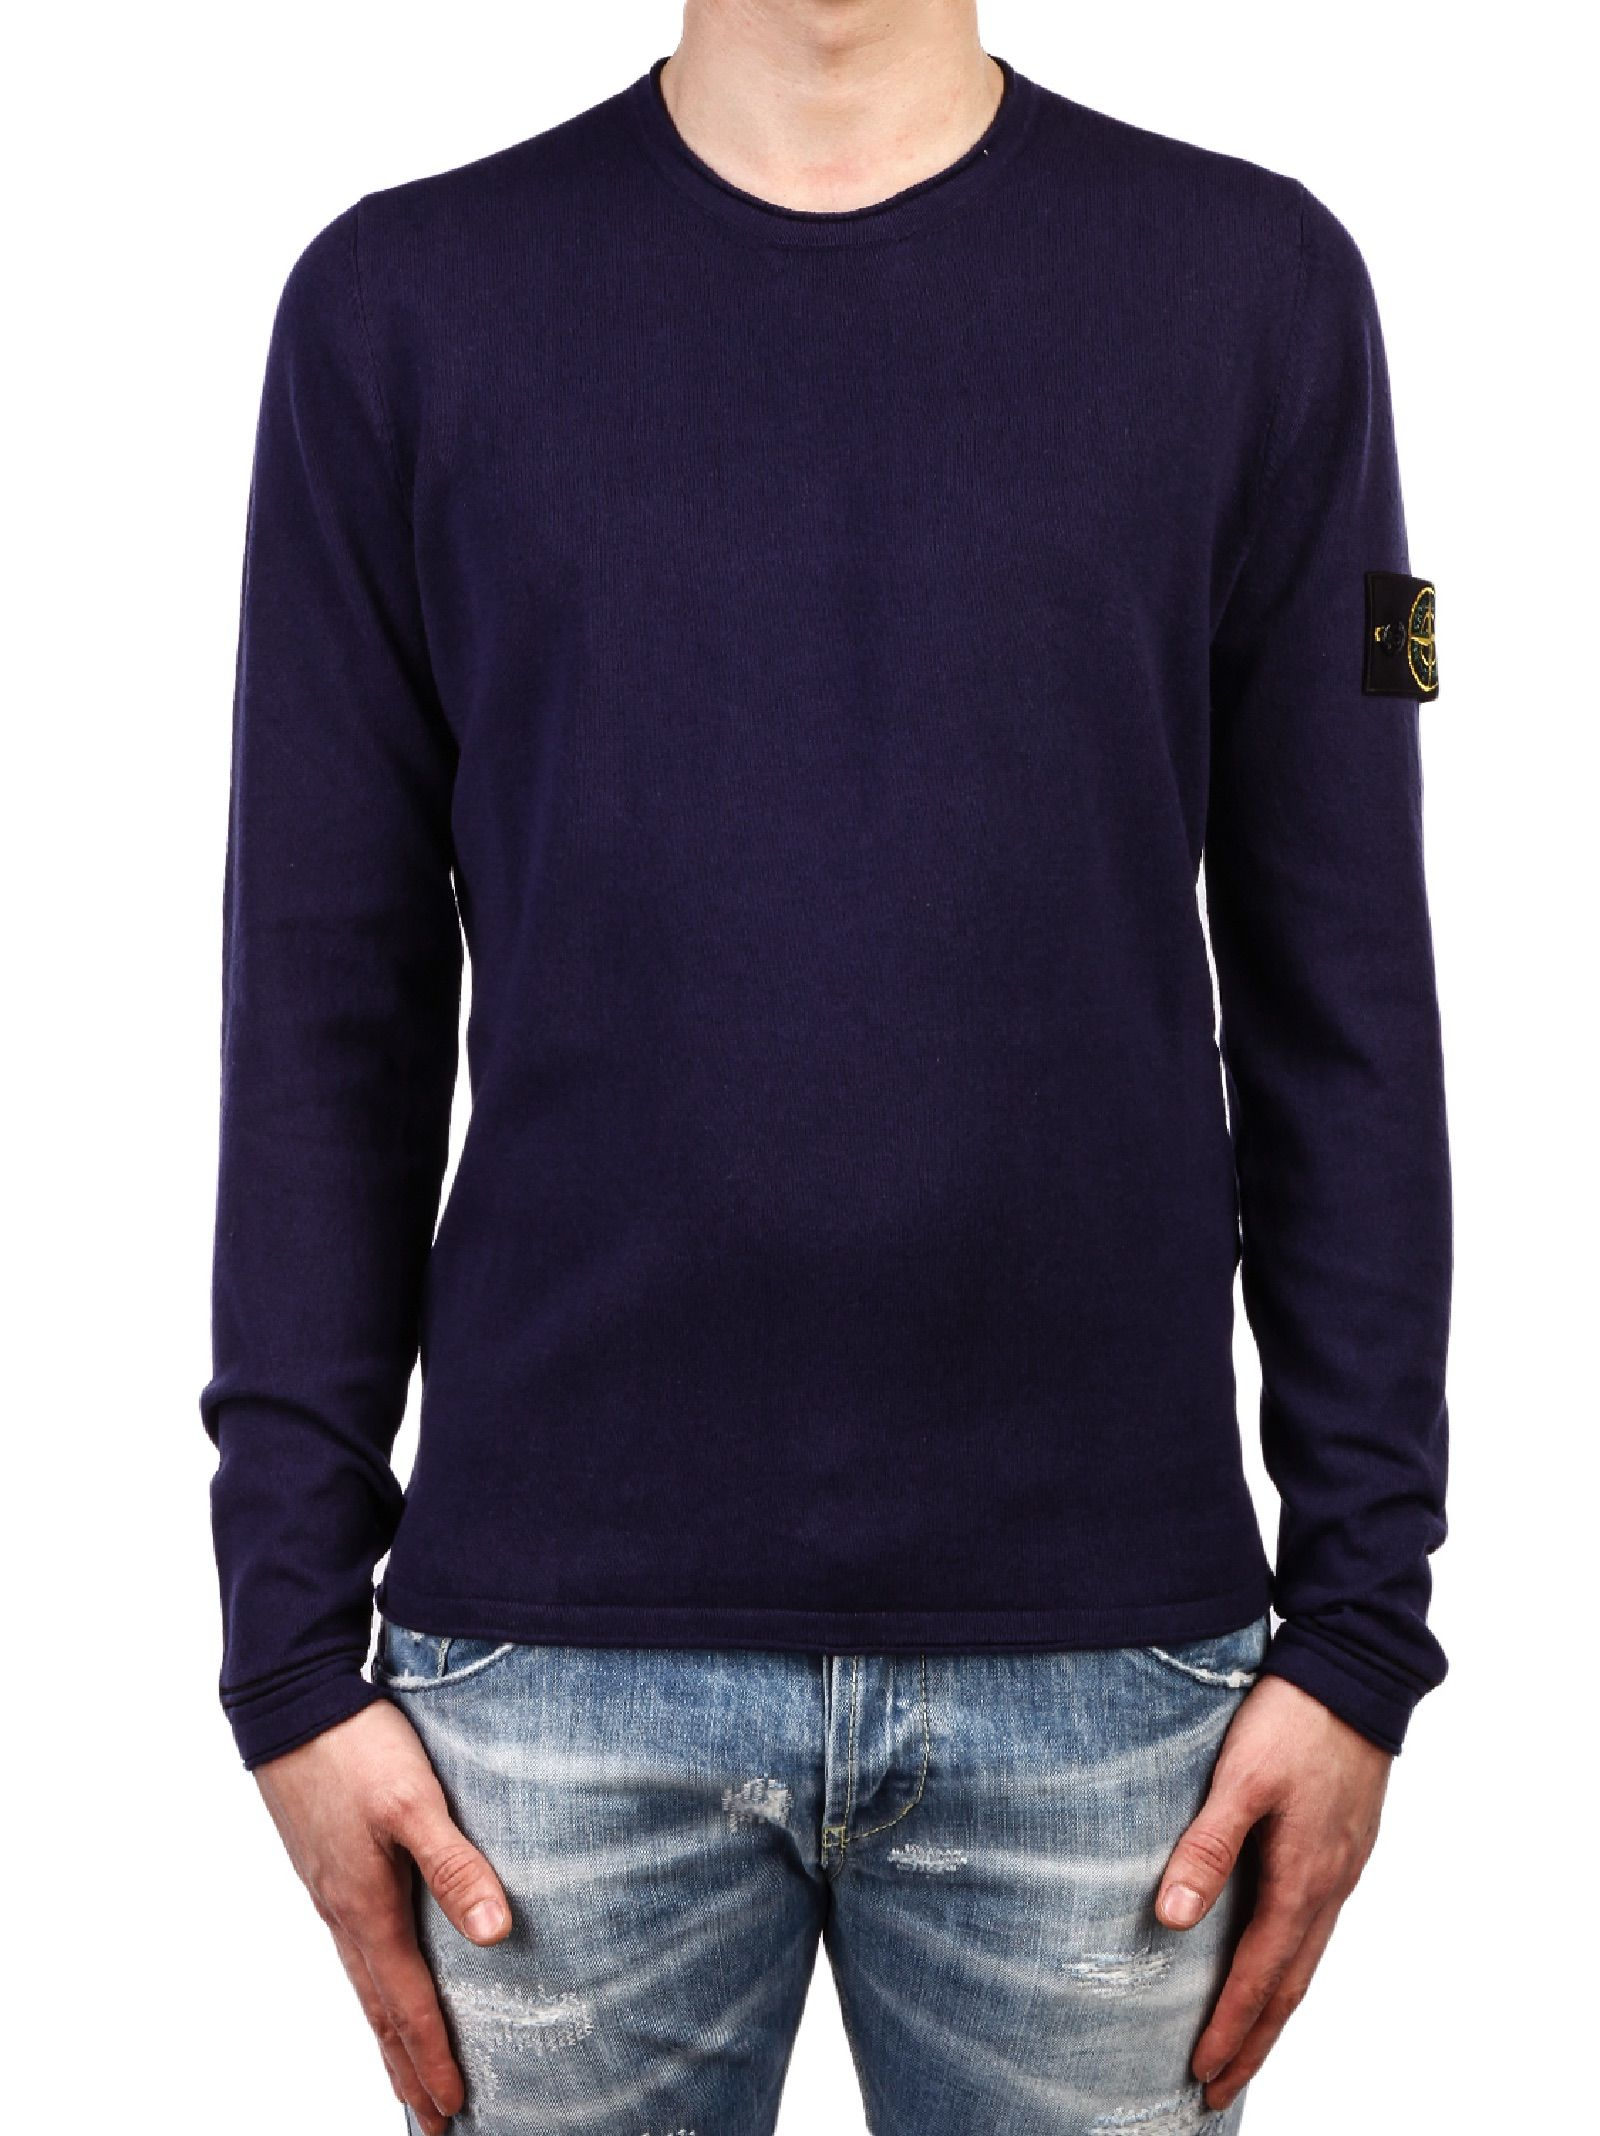 stone island stone island sweater blue men 39 s sweaters italist. Black Bedroom Furniture Sets. Home Design Ideas